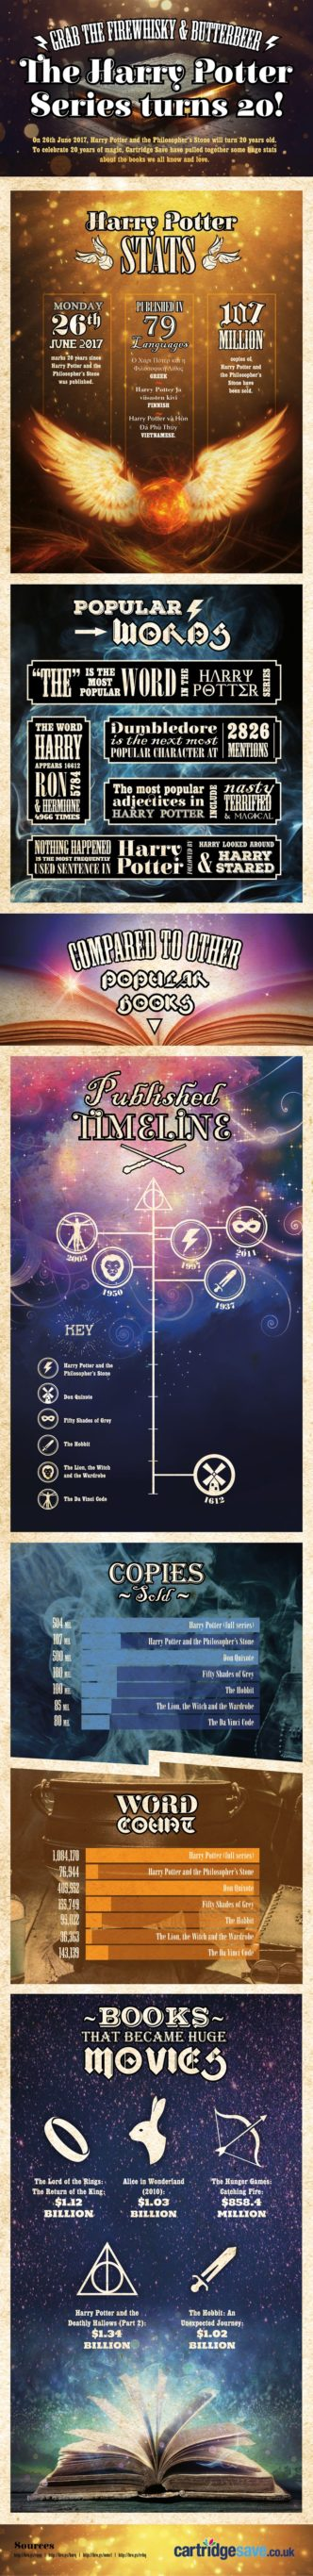 20 magical years of the #HarryPotter series #infographic